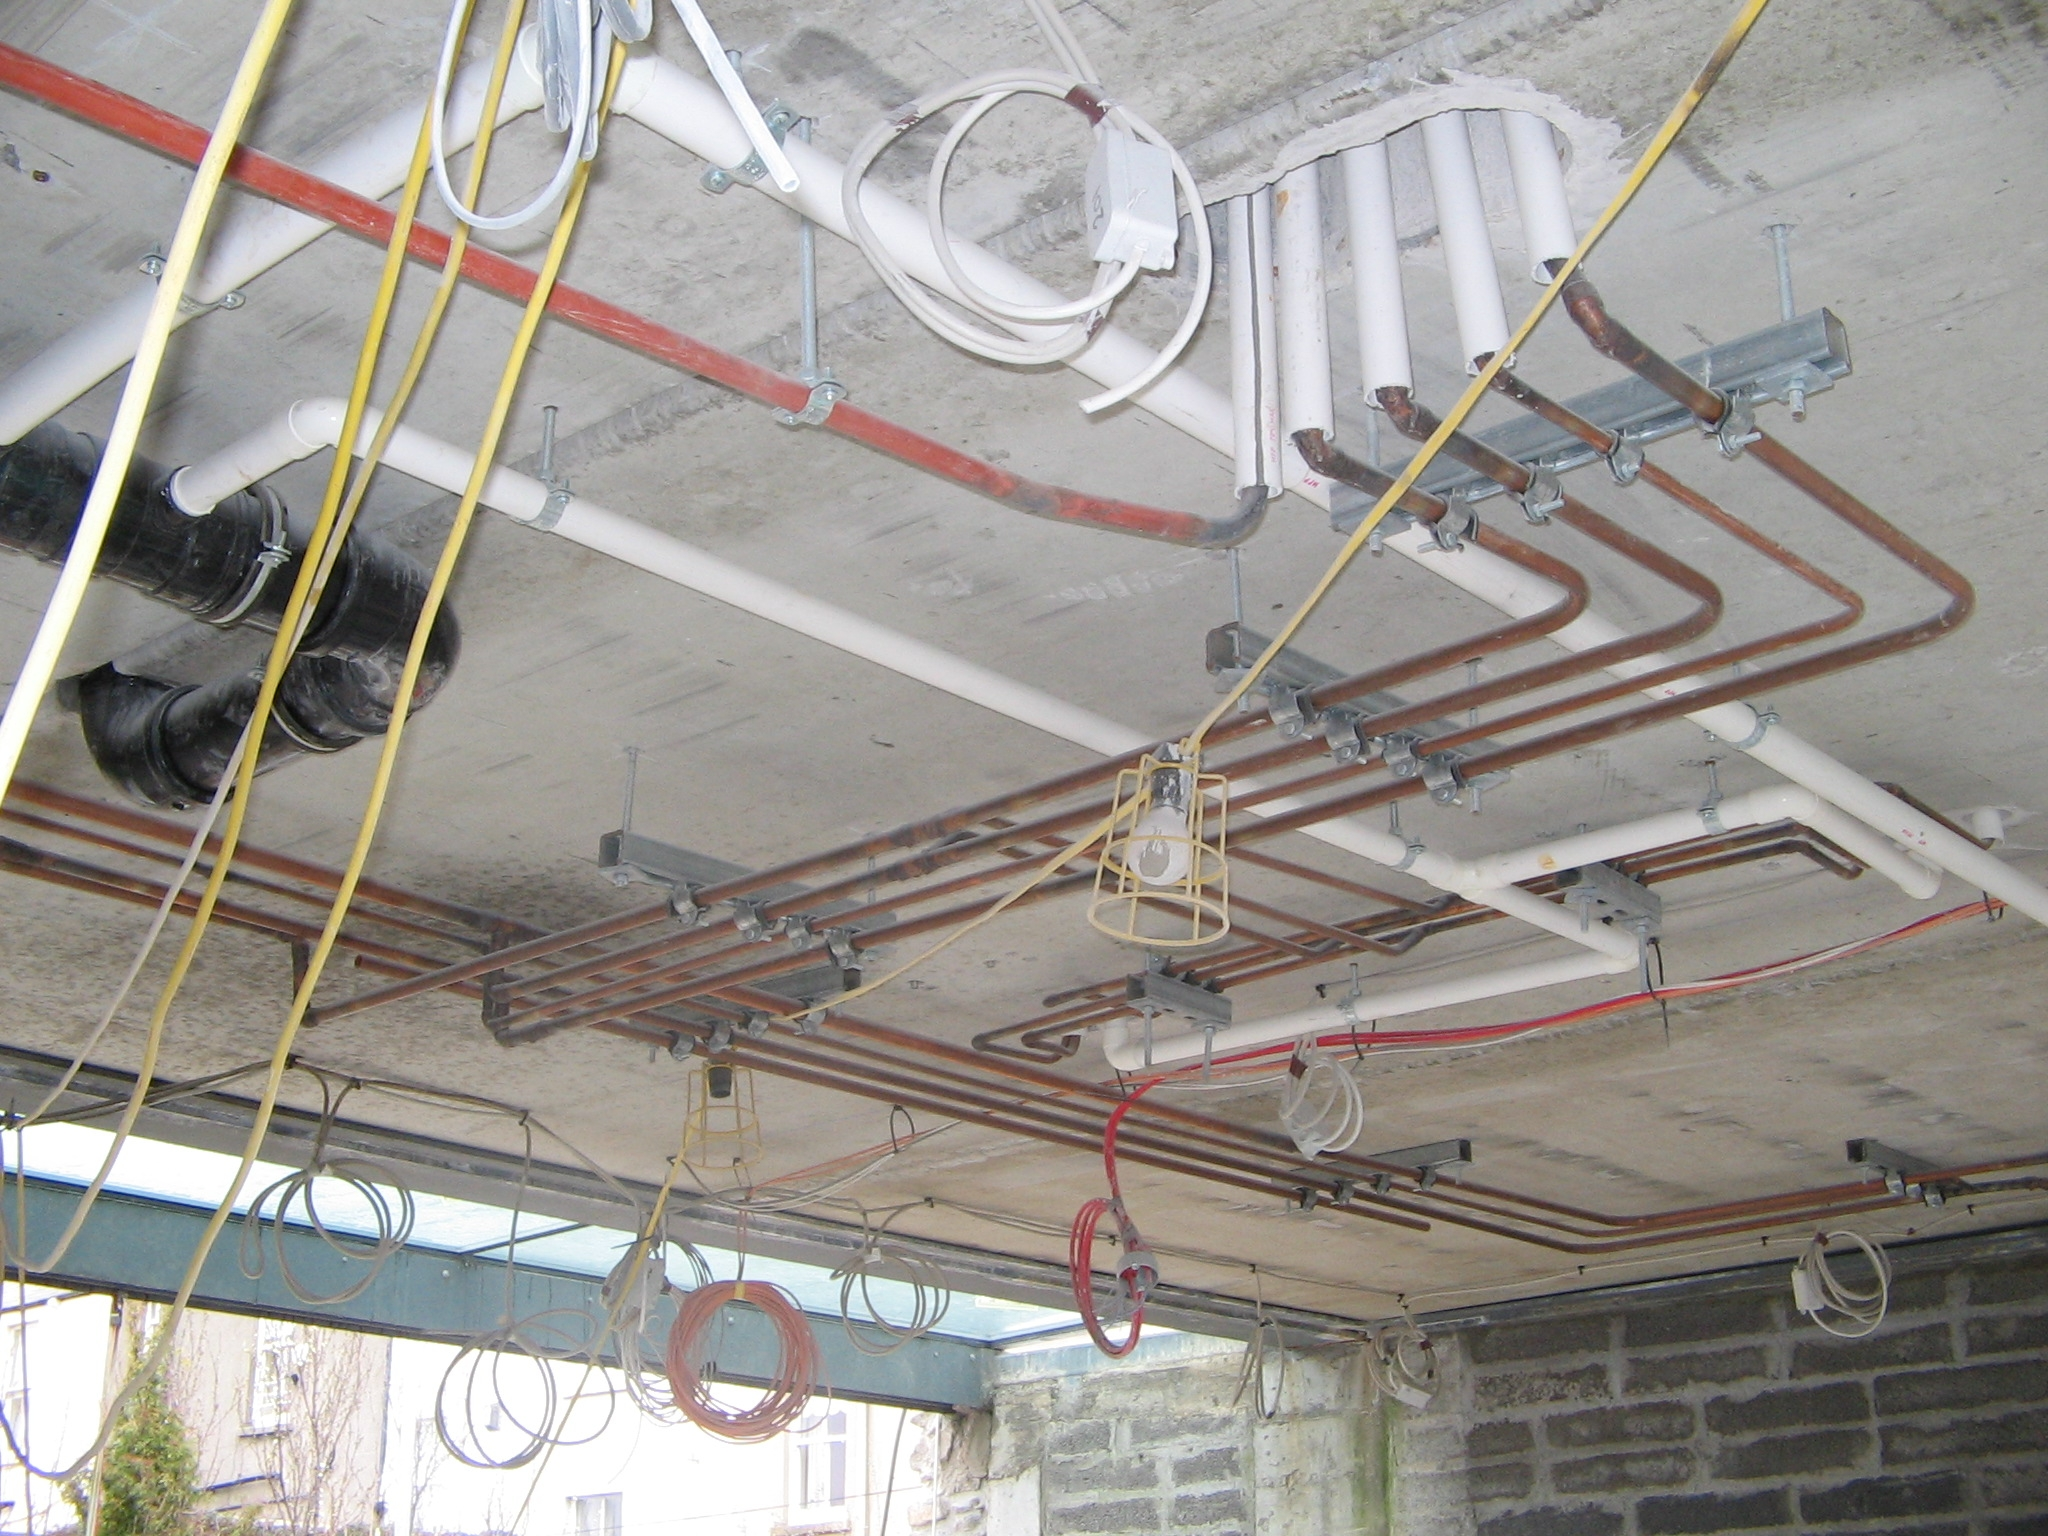 Basement Plumbing Systems Basement Plumbing Systems view pictures and photos for new energy systems ltlt watch the 2048 X 1536